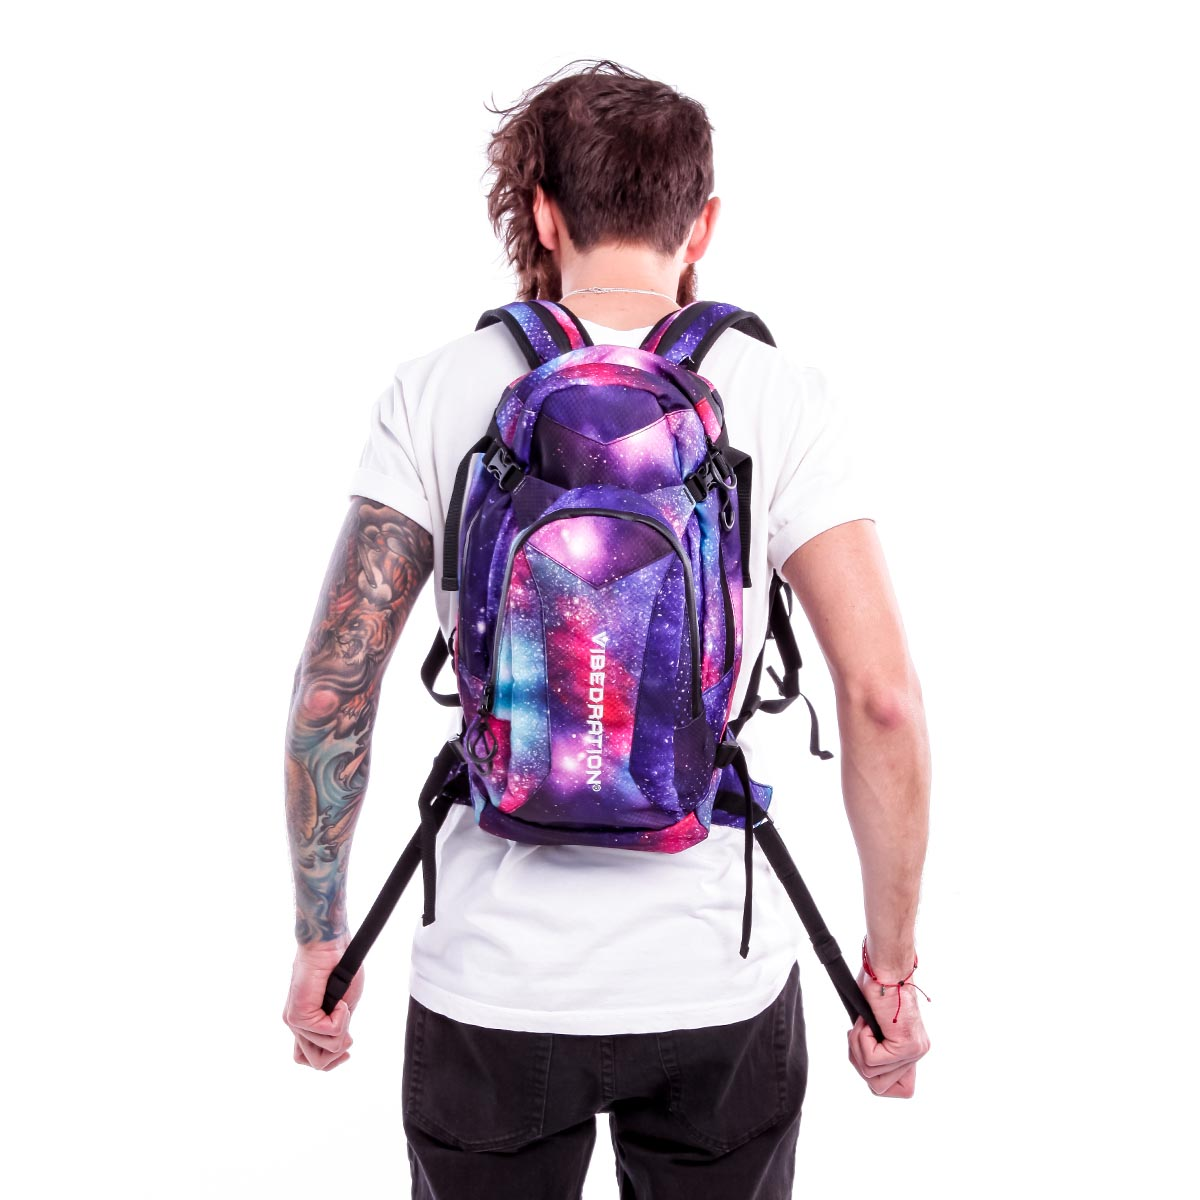 A guy adjusting the size of the galaxy pack